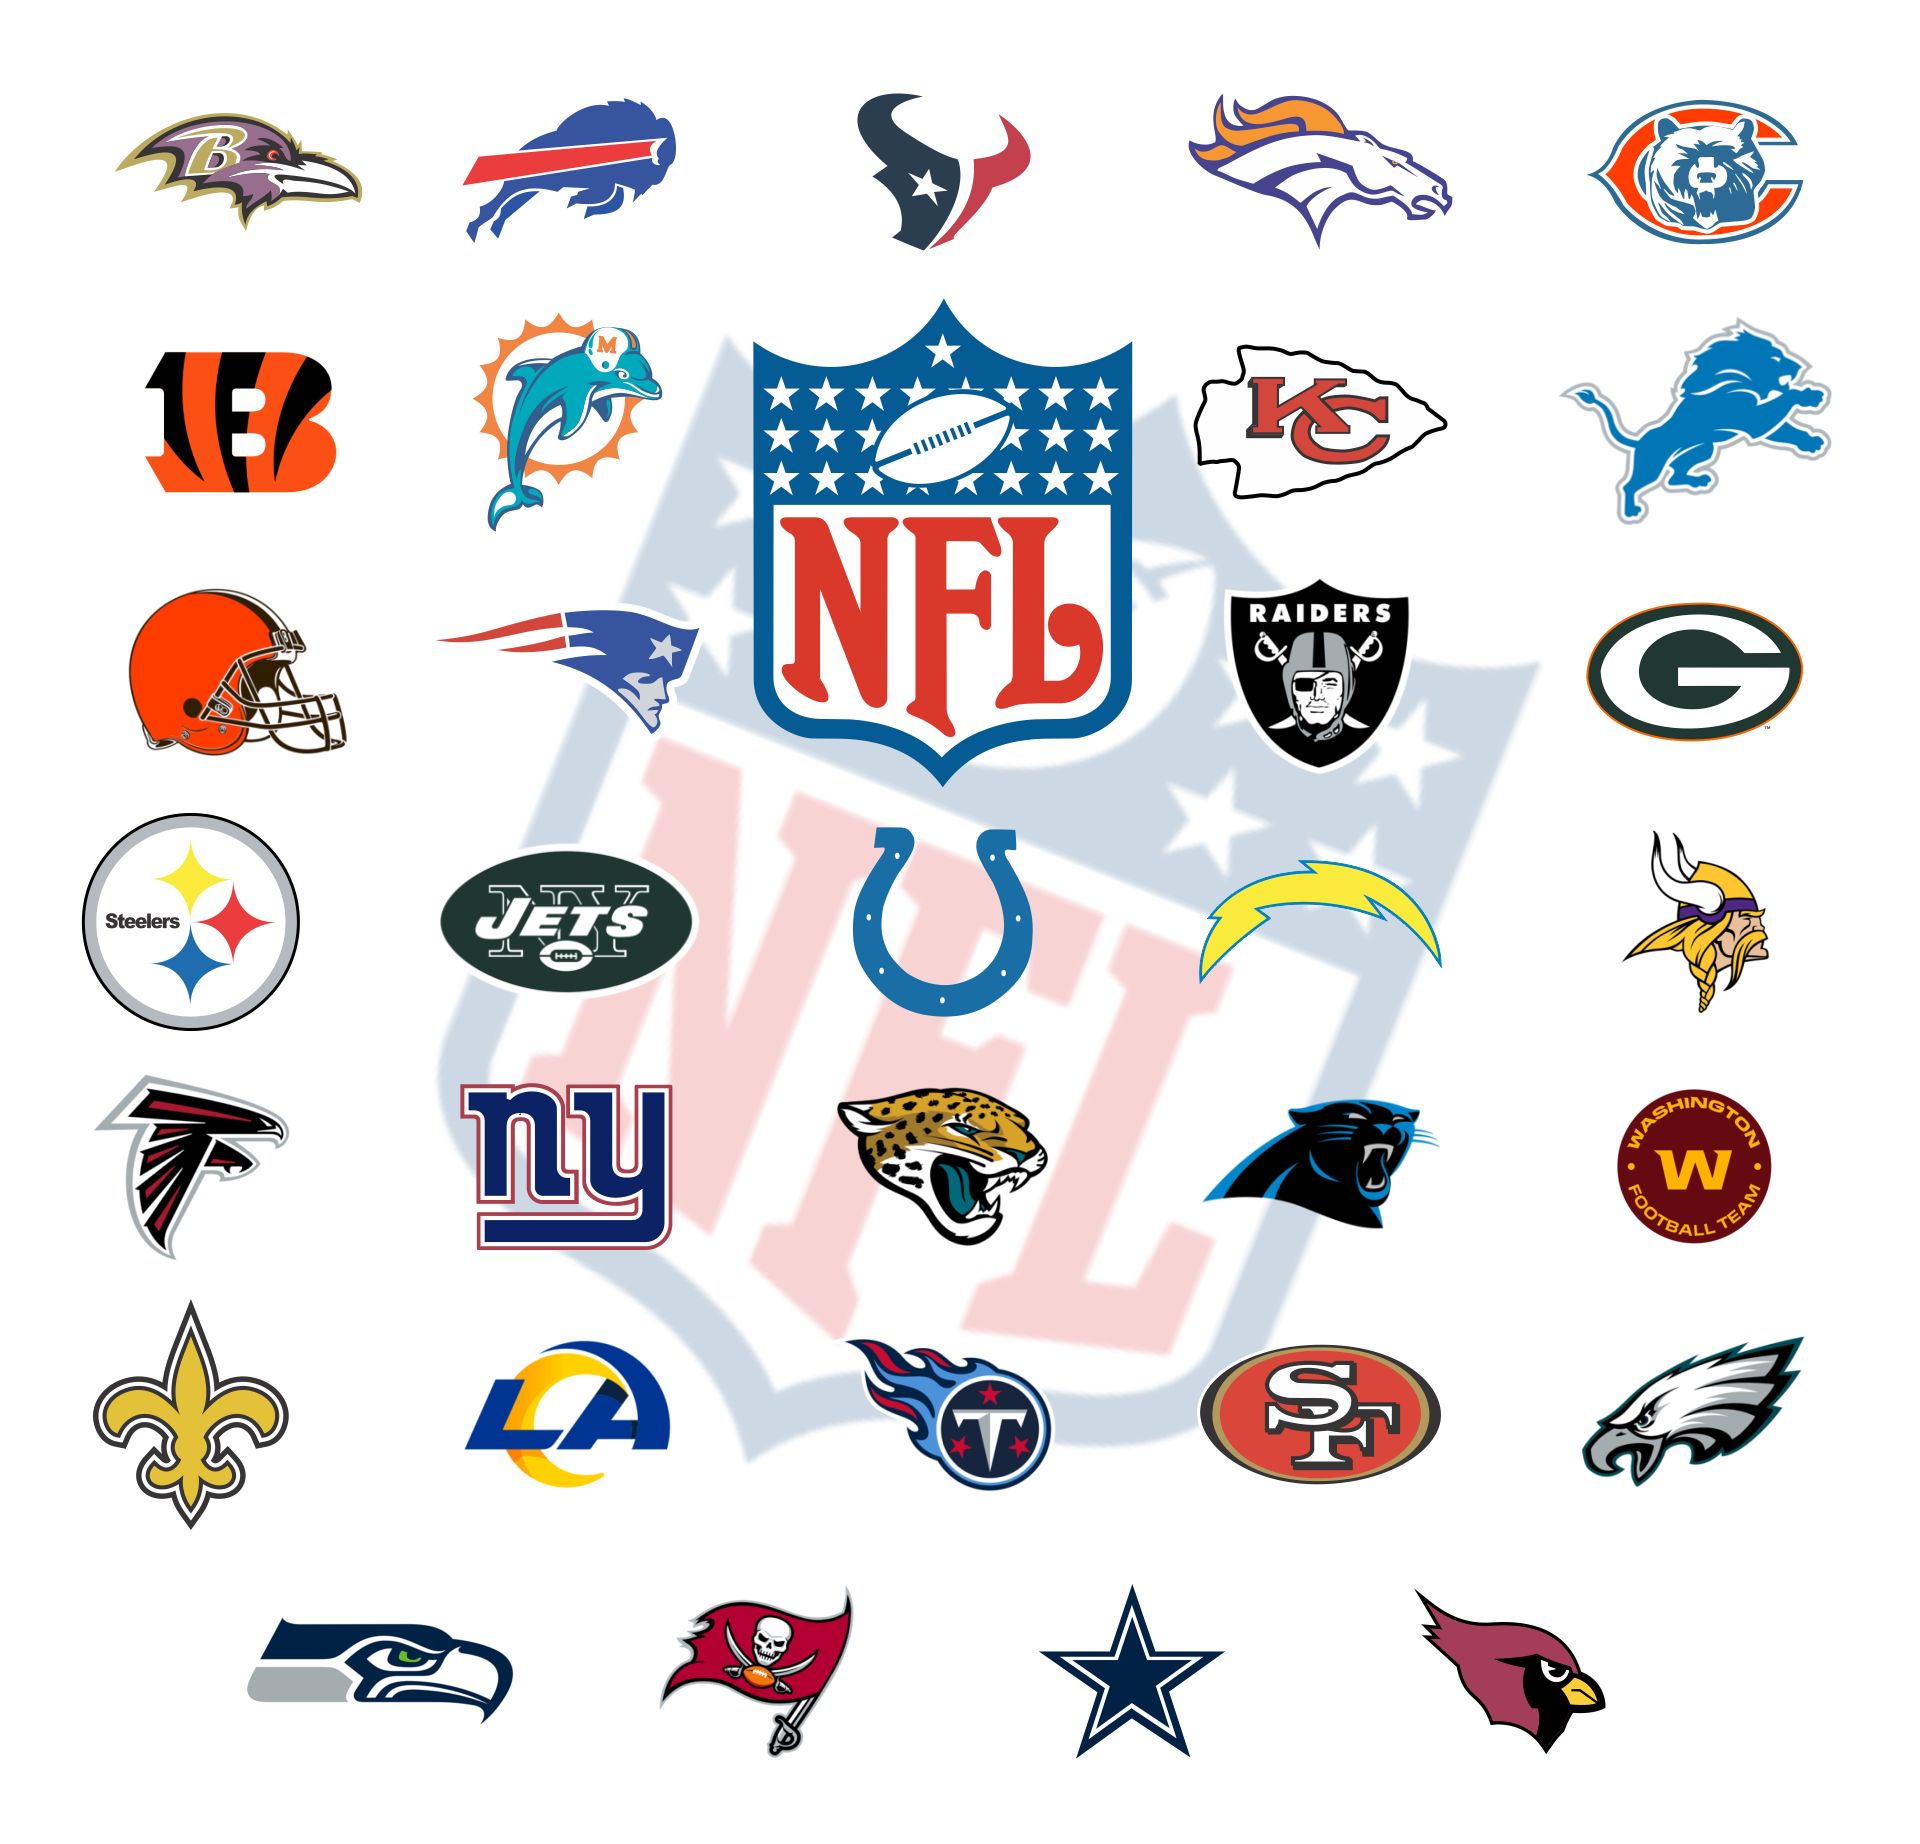 7 Best Images of NFL Football Logos Printable - NFL ...